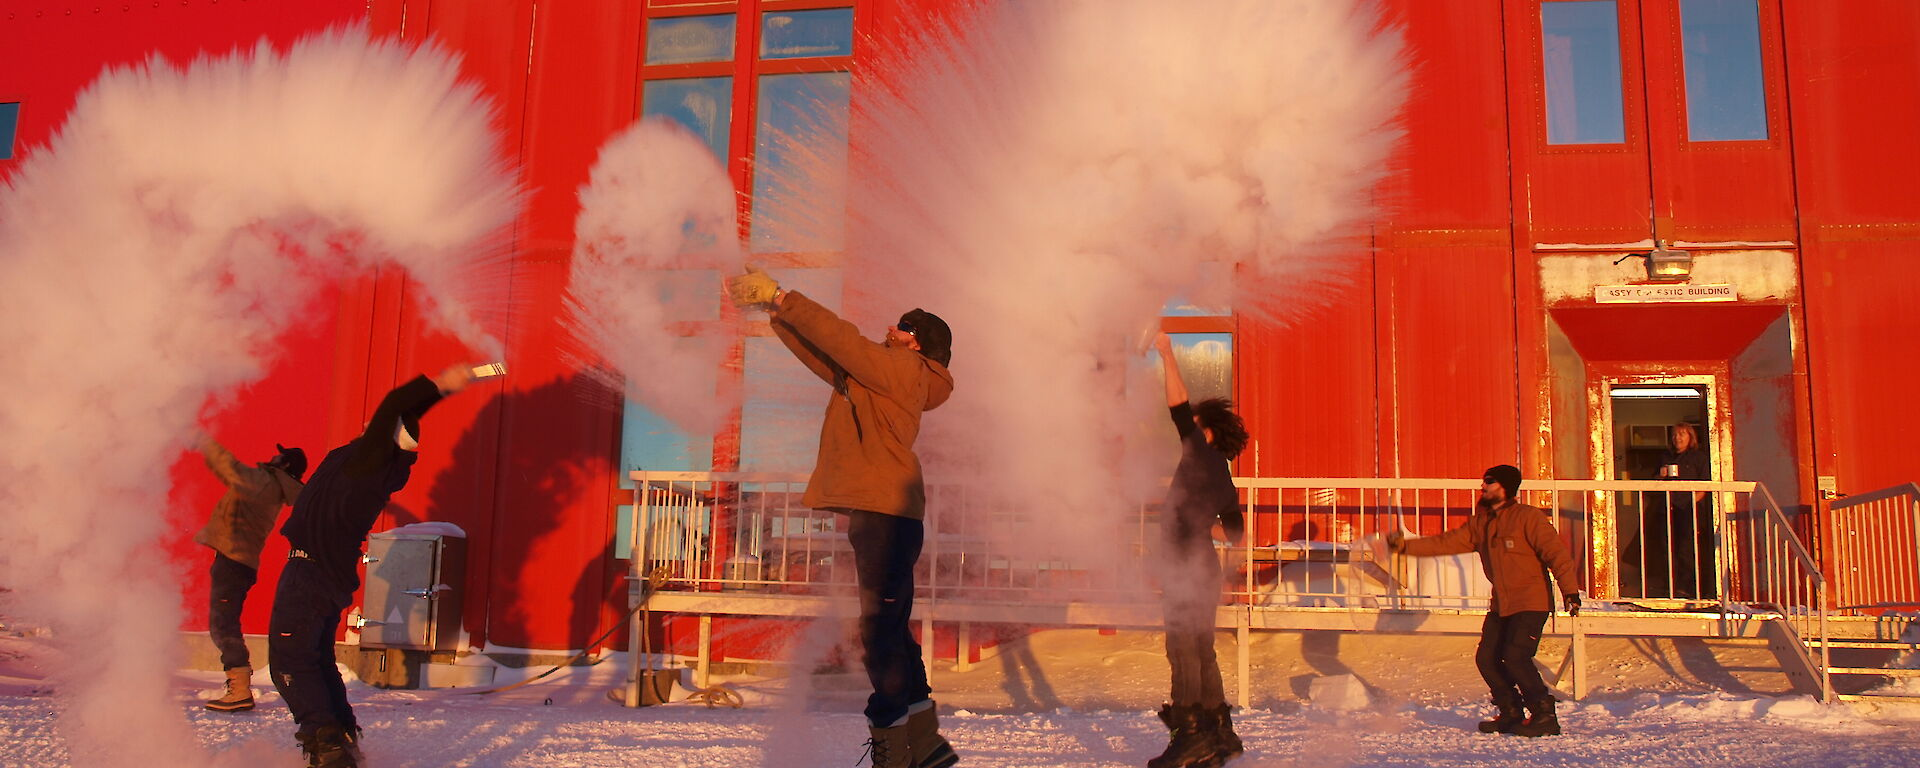 A team of expeditioners throwing boiling water from jugs into the cold air